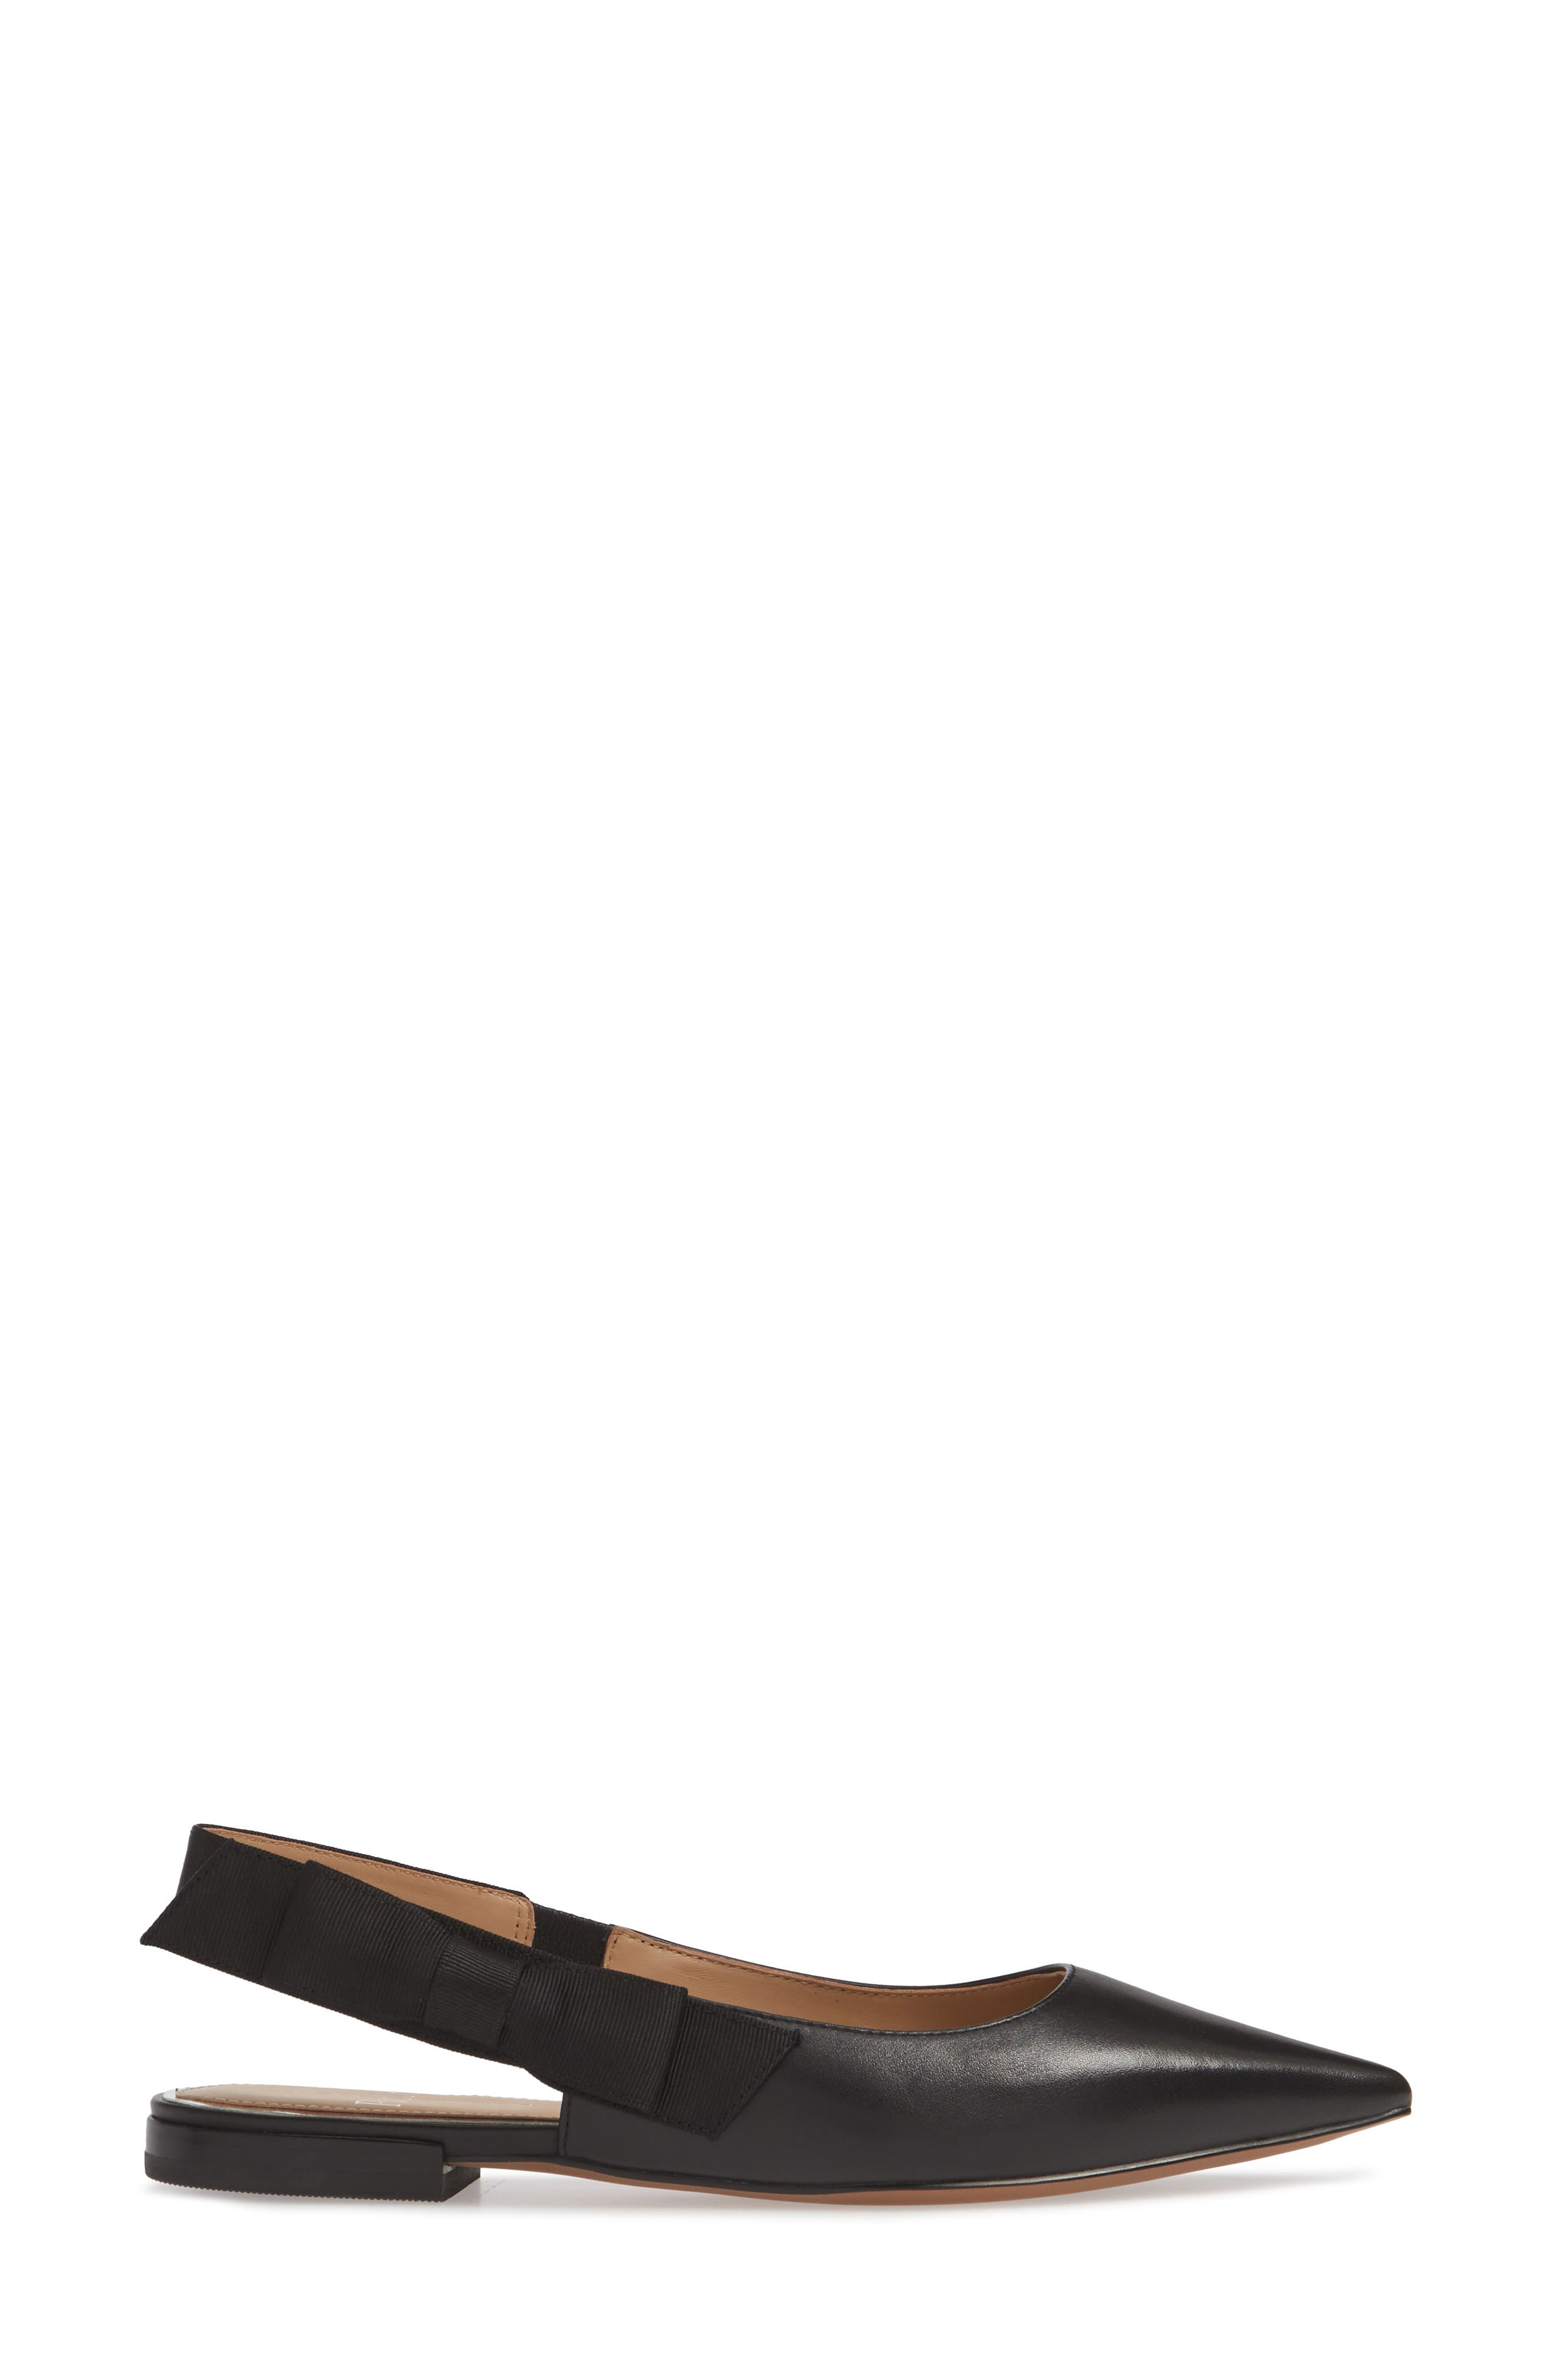 LINEA PAOLO, Darcy Bow Slingback Flat, Alternate thumbnail 3, color, BLACK LEATHER